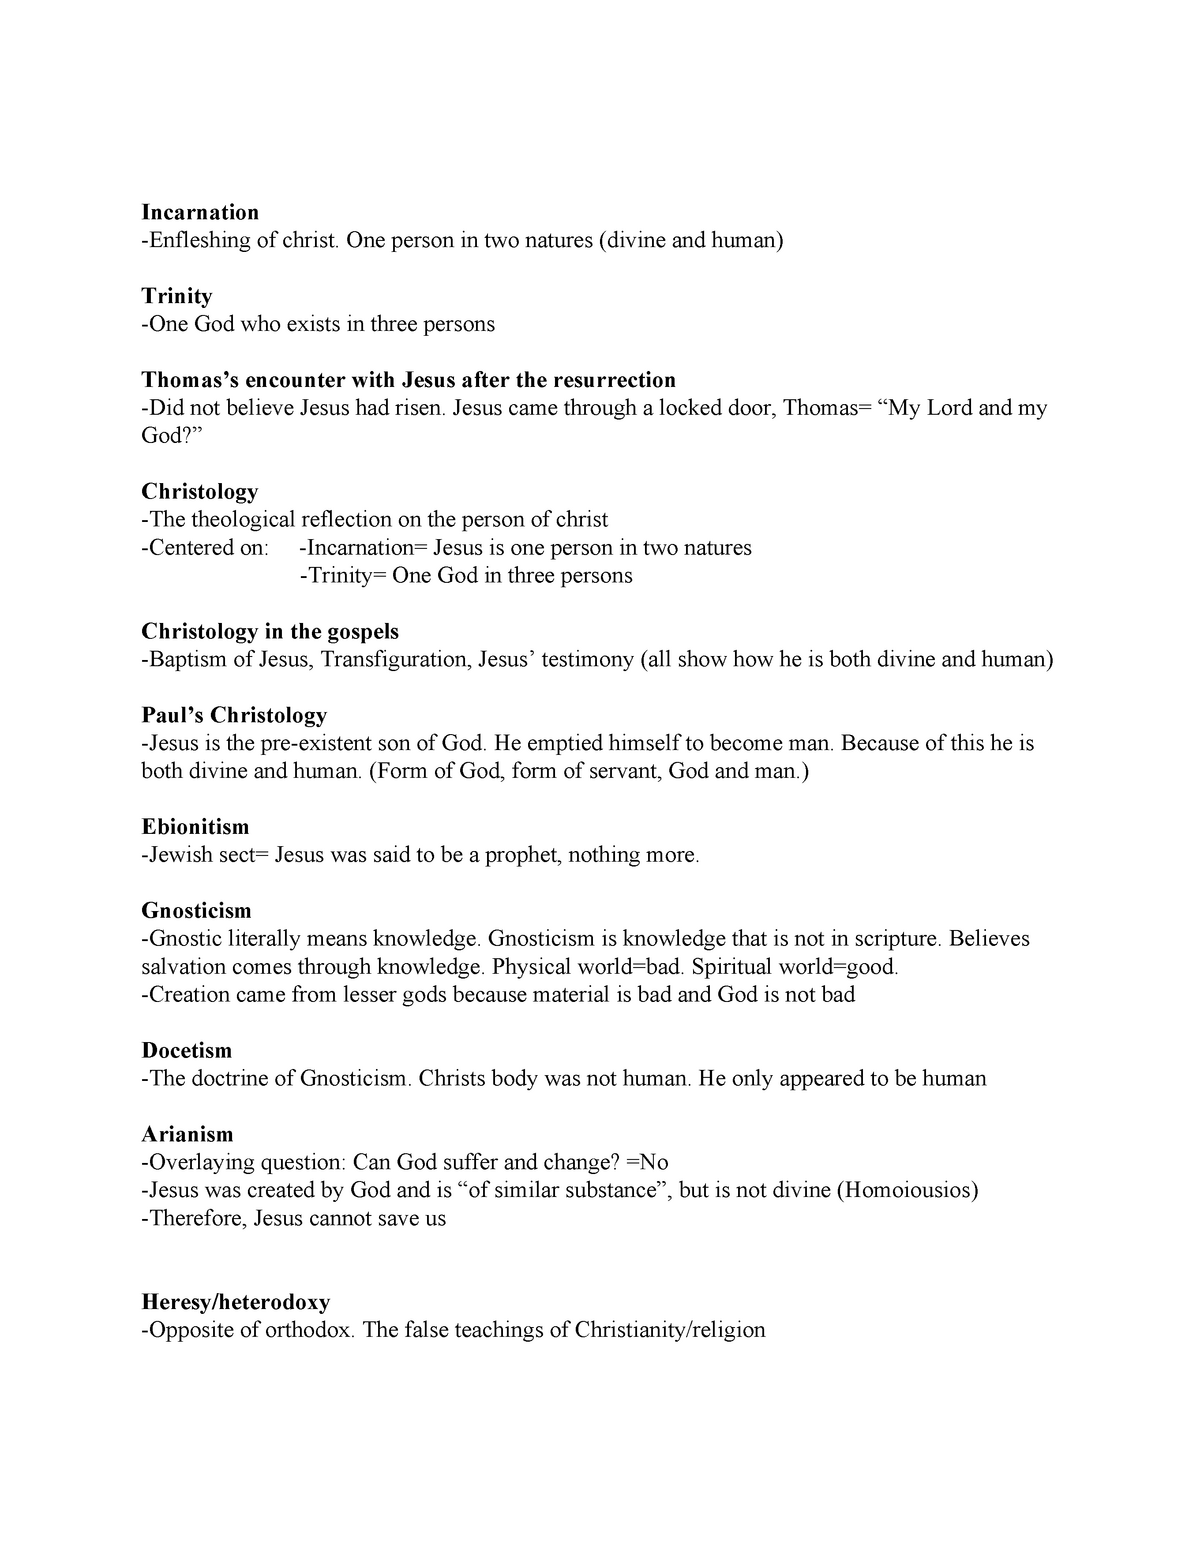 Theology Final Study Guide - THEO 193: Intro To Study Of